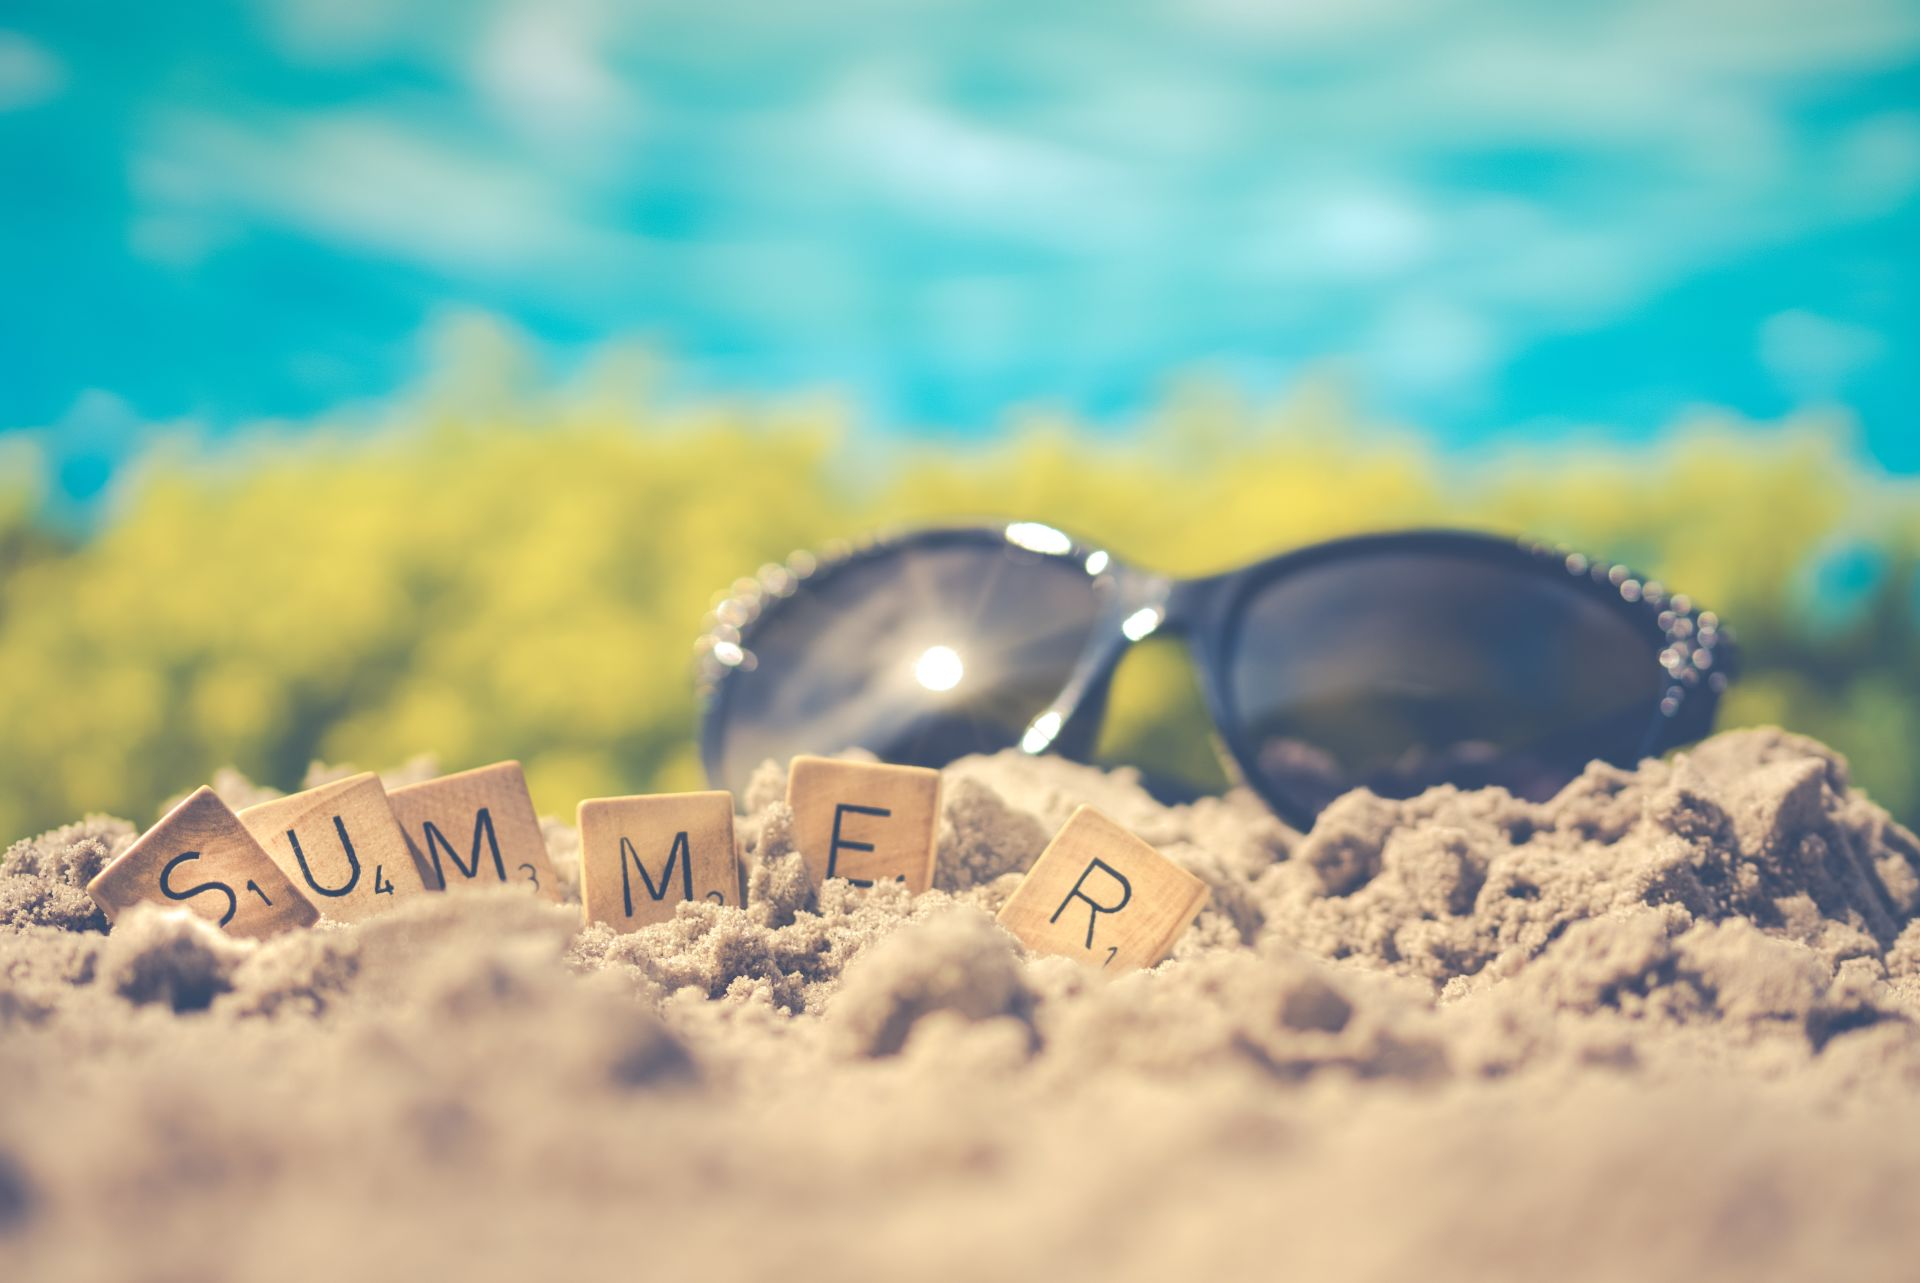 Summer is coming!